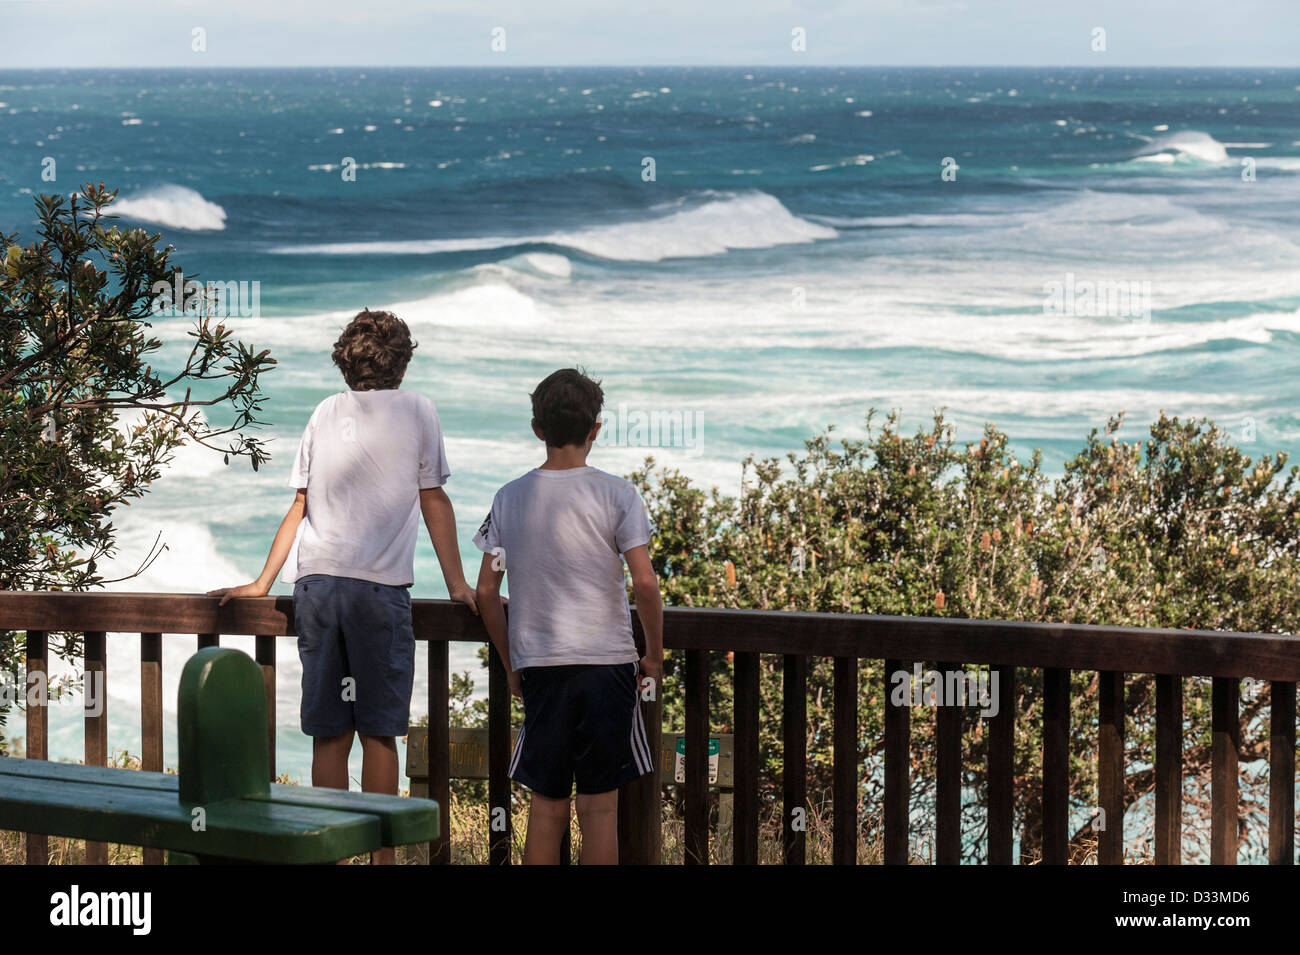 North Stradbroke Island, Queensland, Australia - Two young boys looking out over the sea from a viewpoint - Stock Image